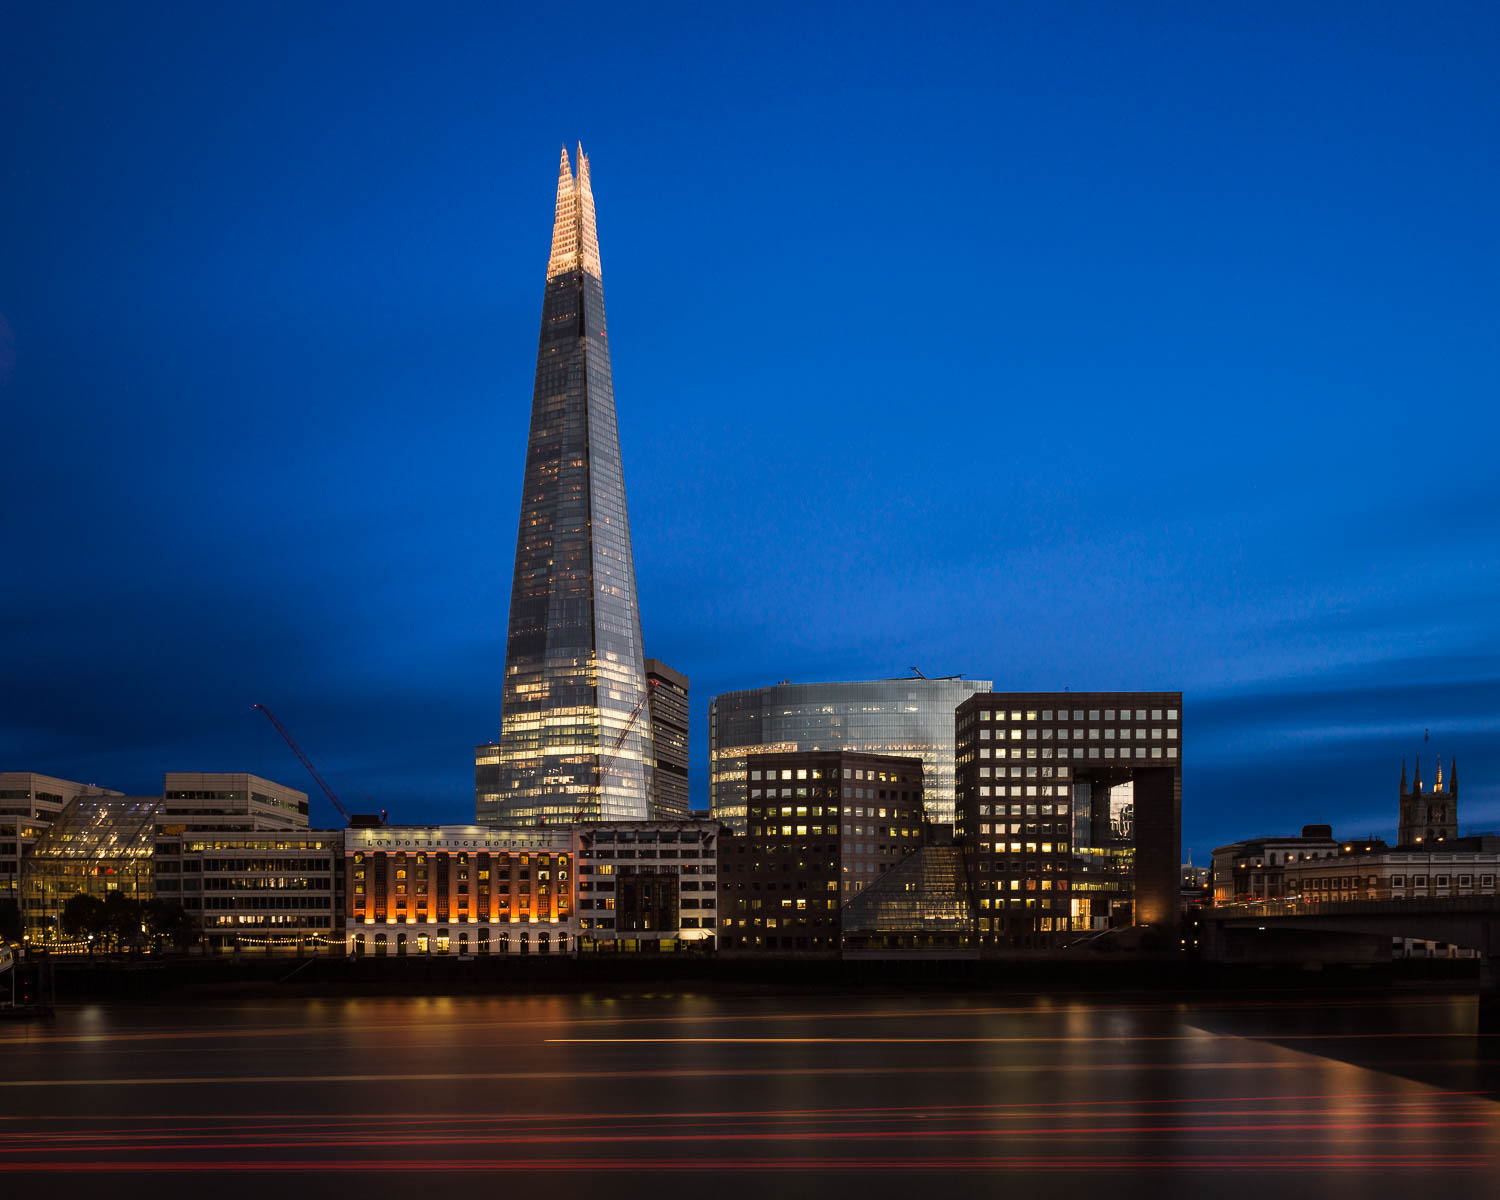 Evening at the Shard - overlooking the Thames River as boats busied themselves